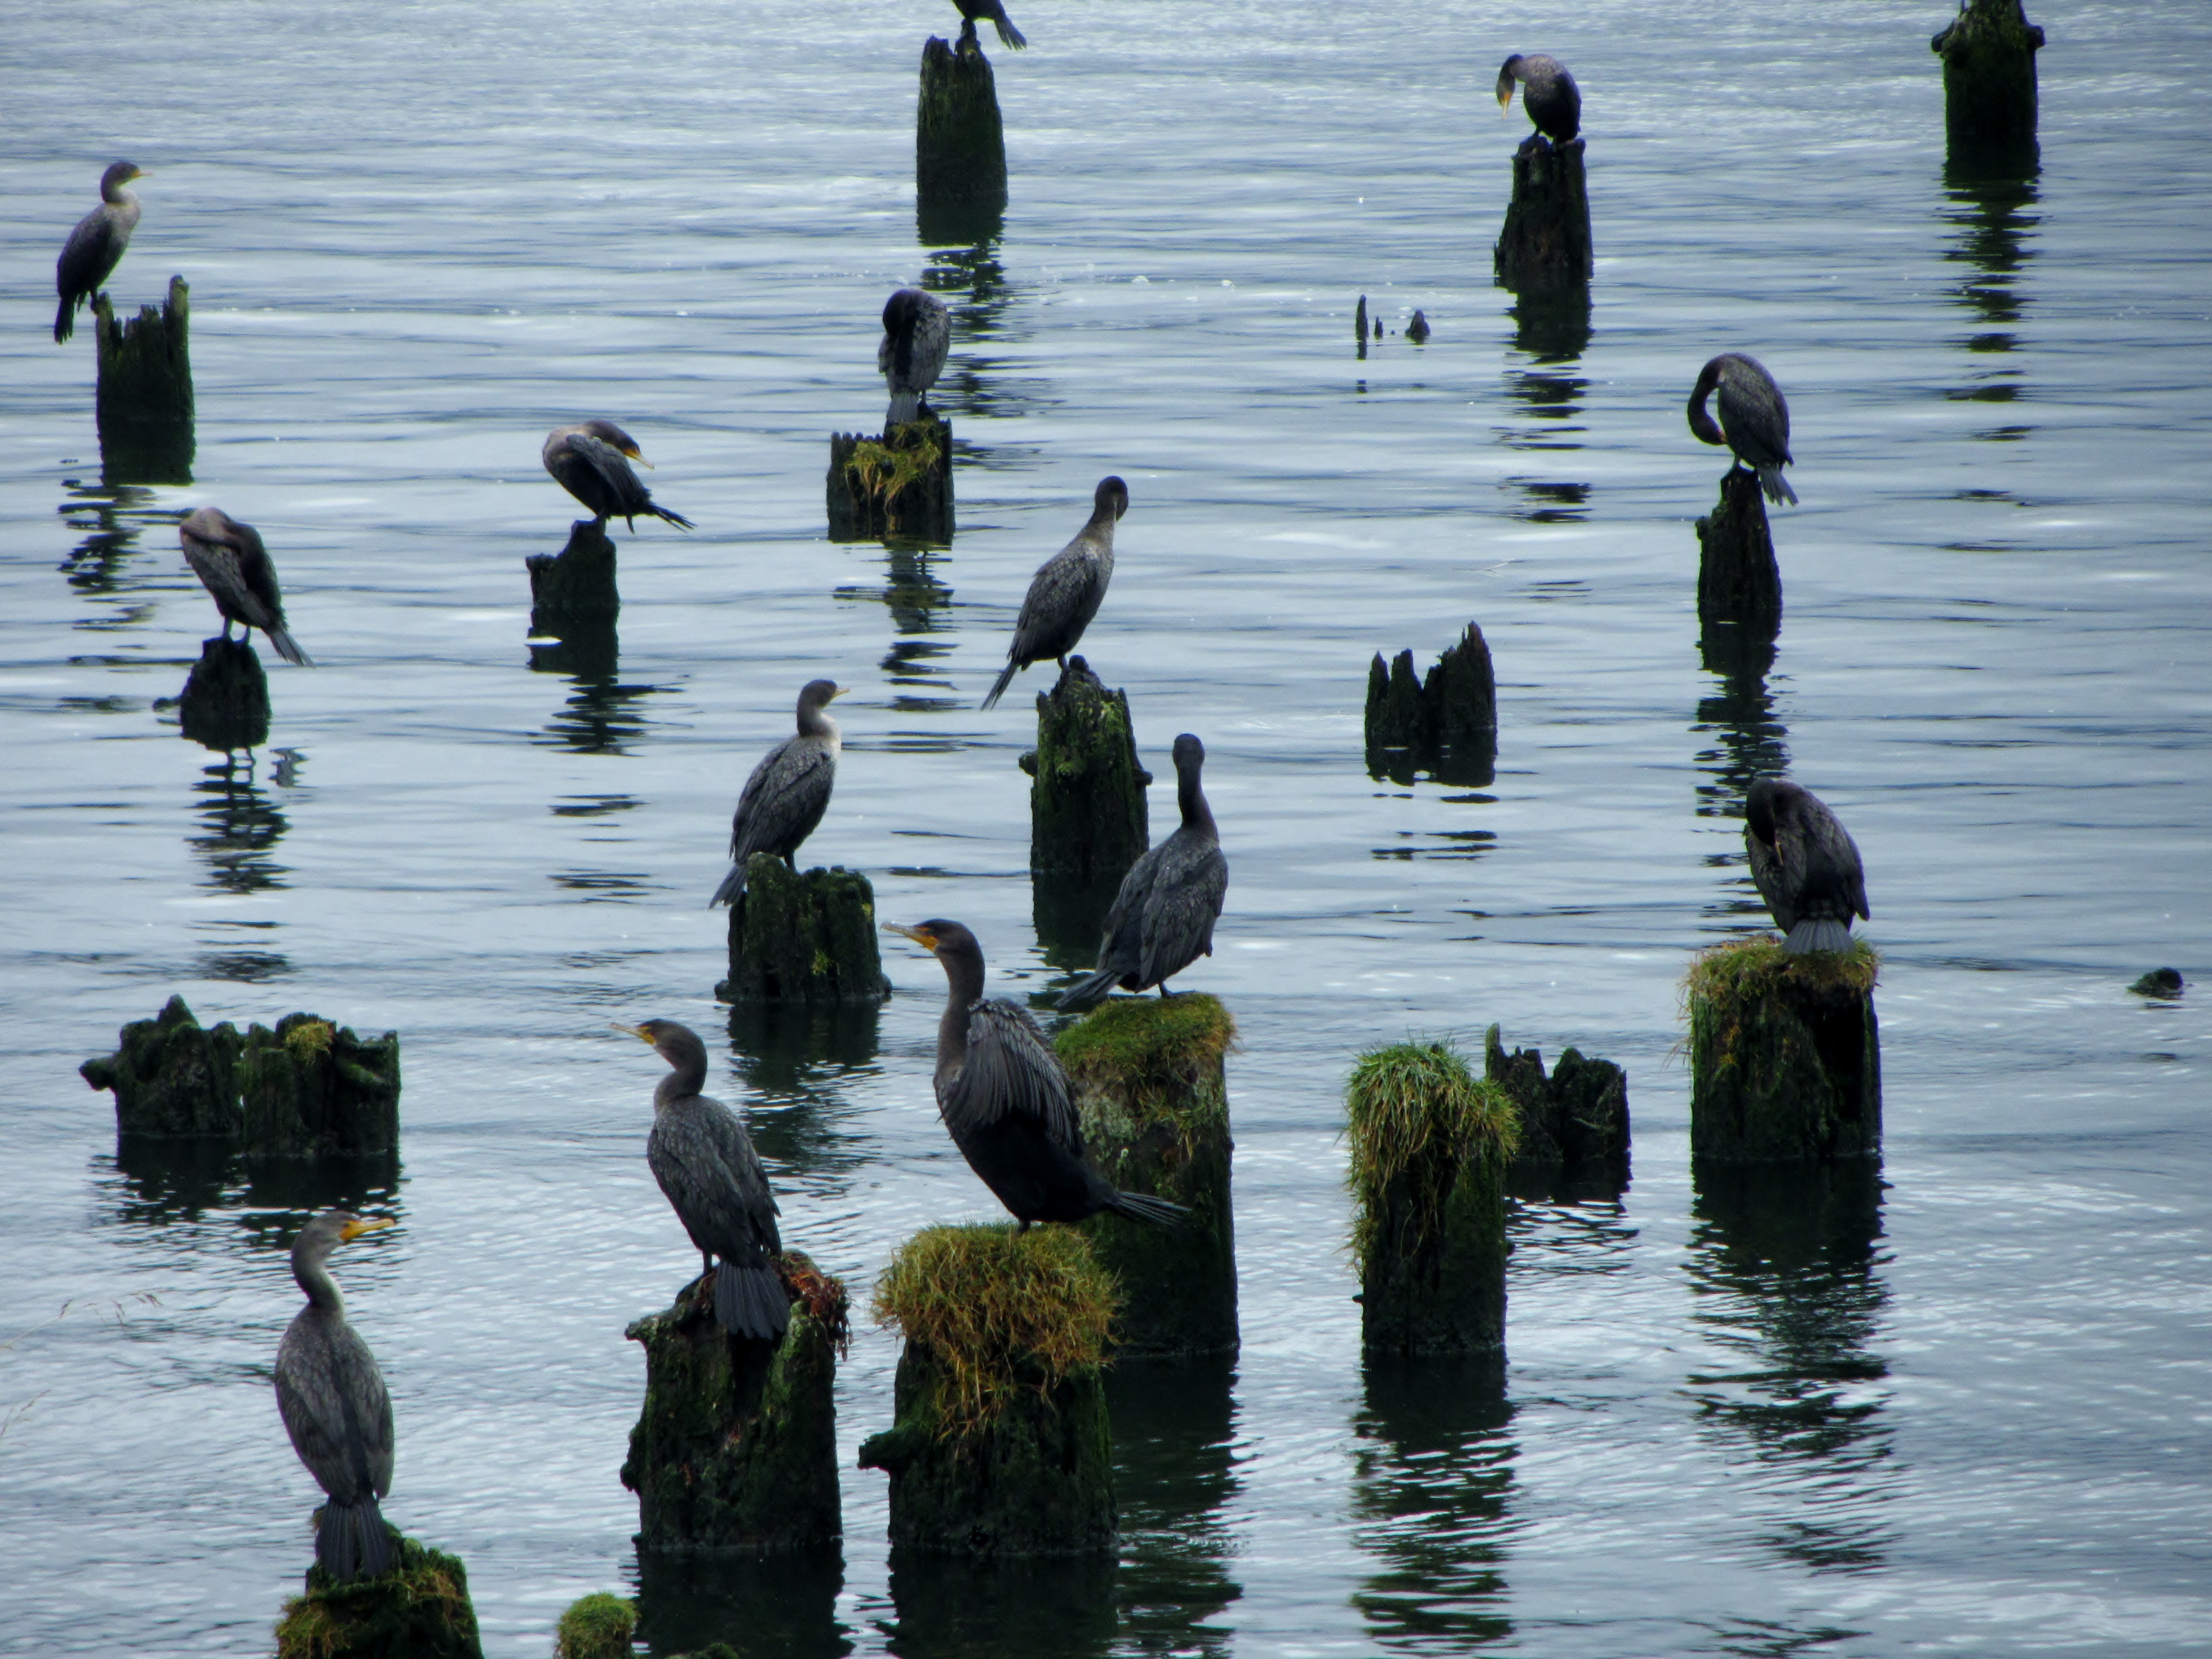 Cormorant on old pilings, Astoria, Oregon, Columbia River